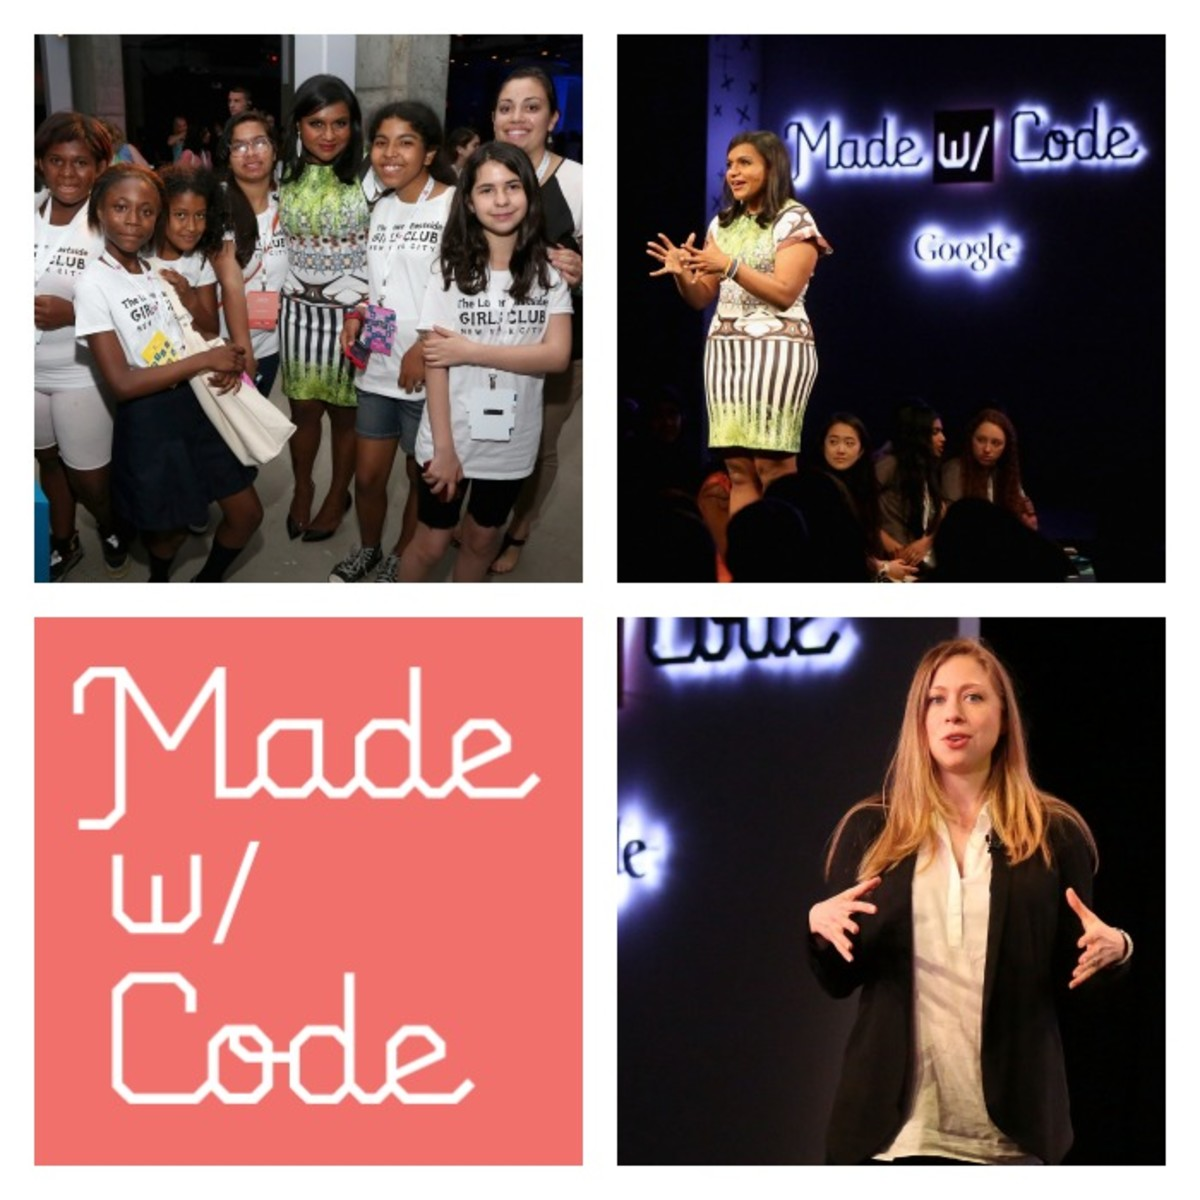 Google Launches Made with Code